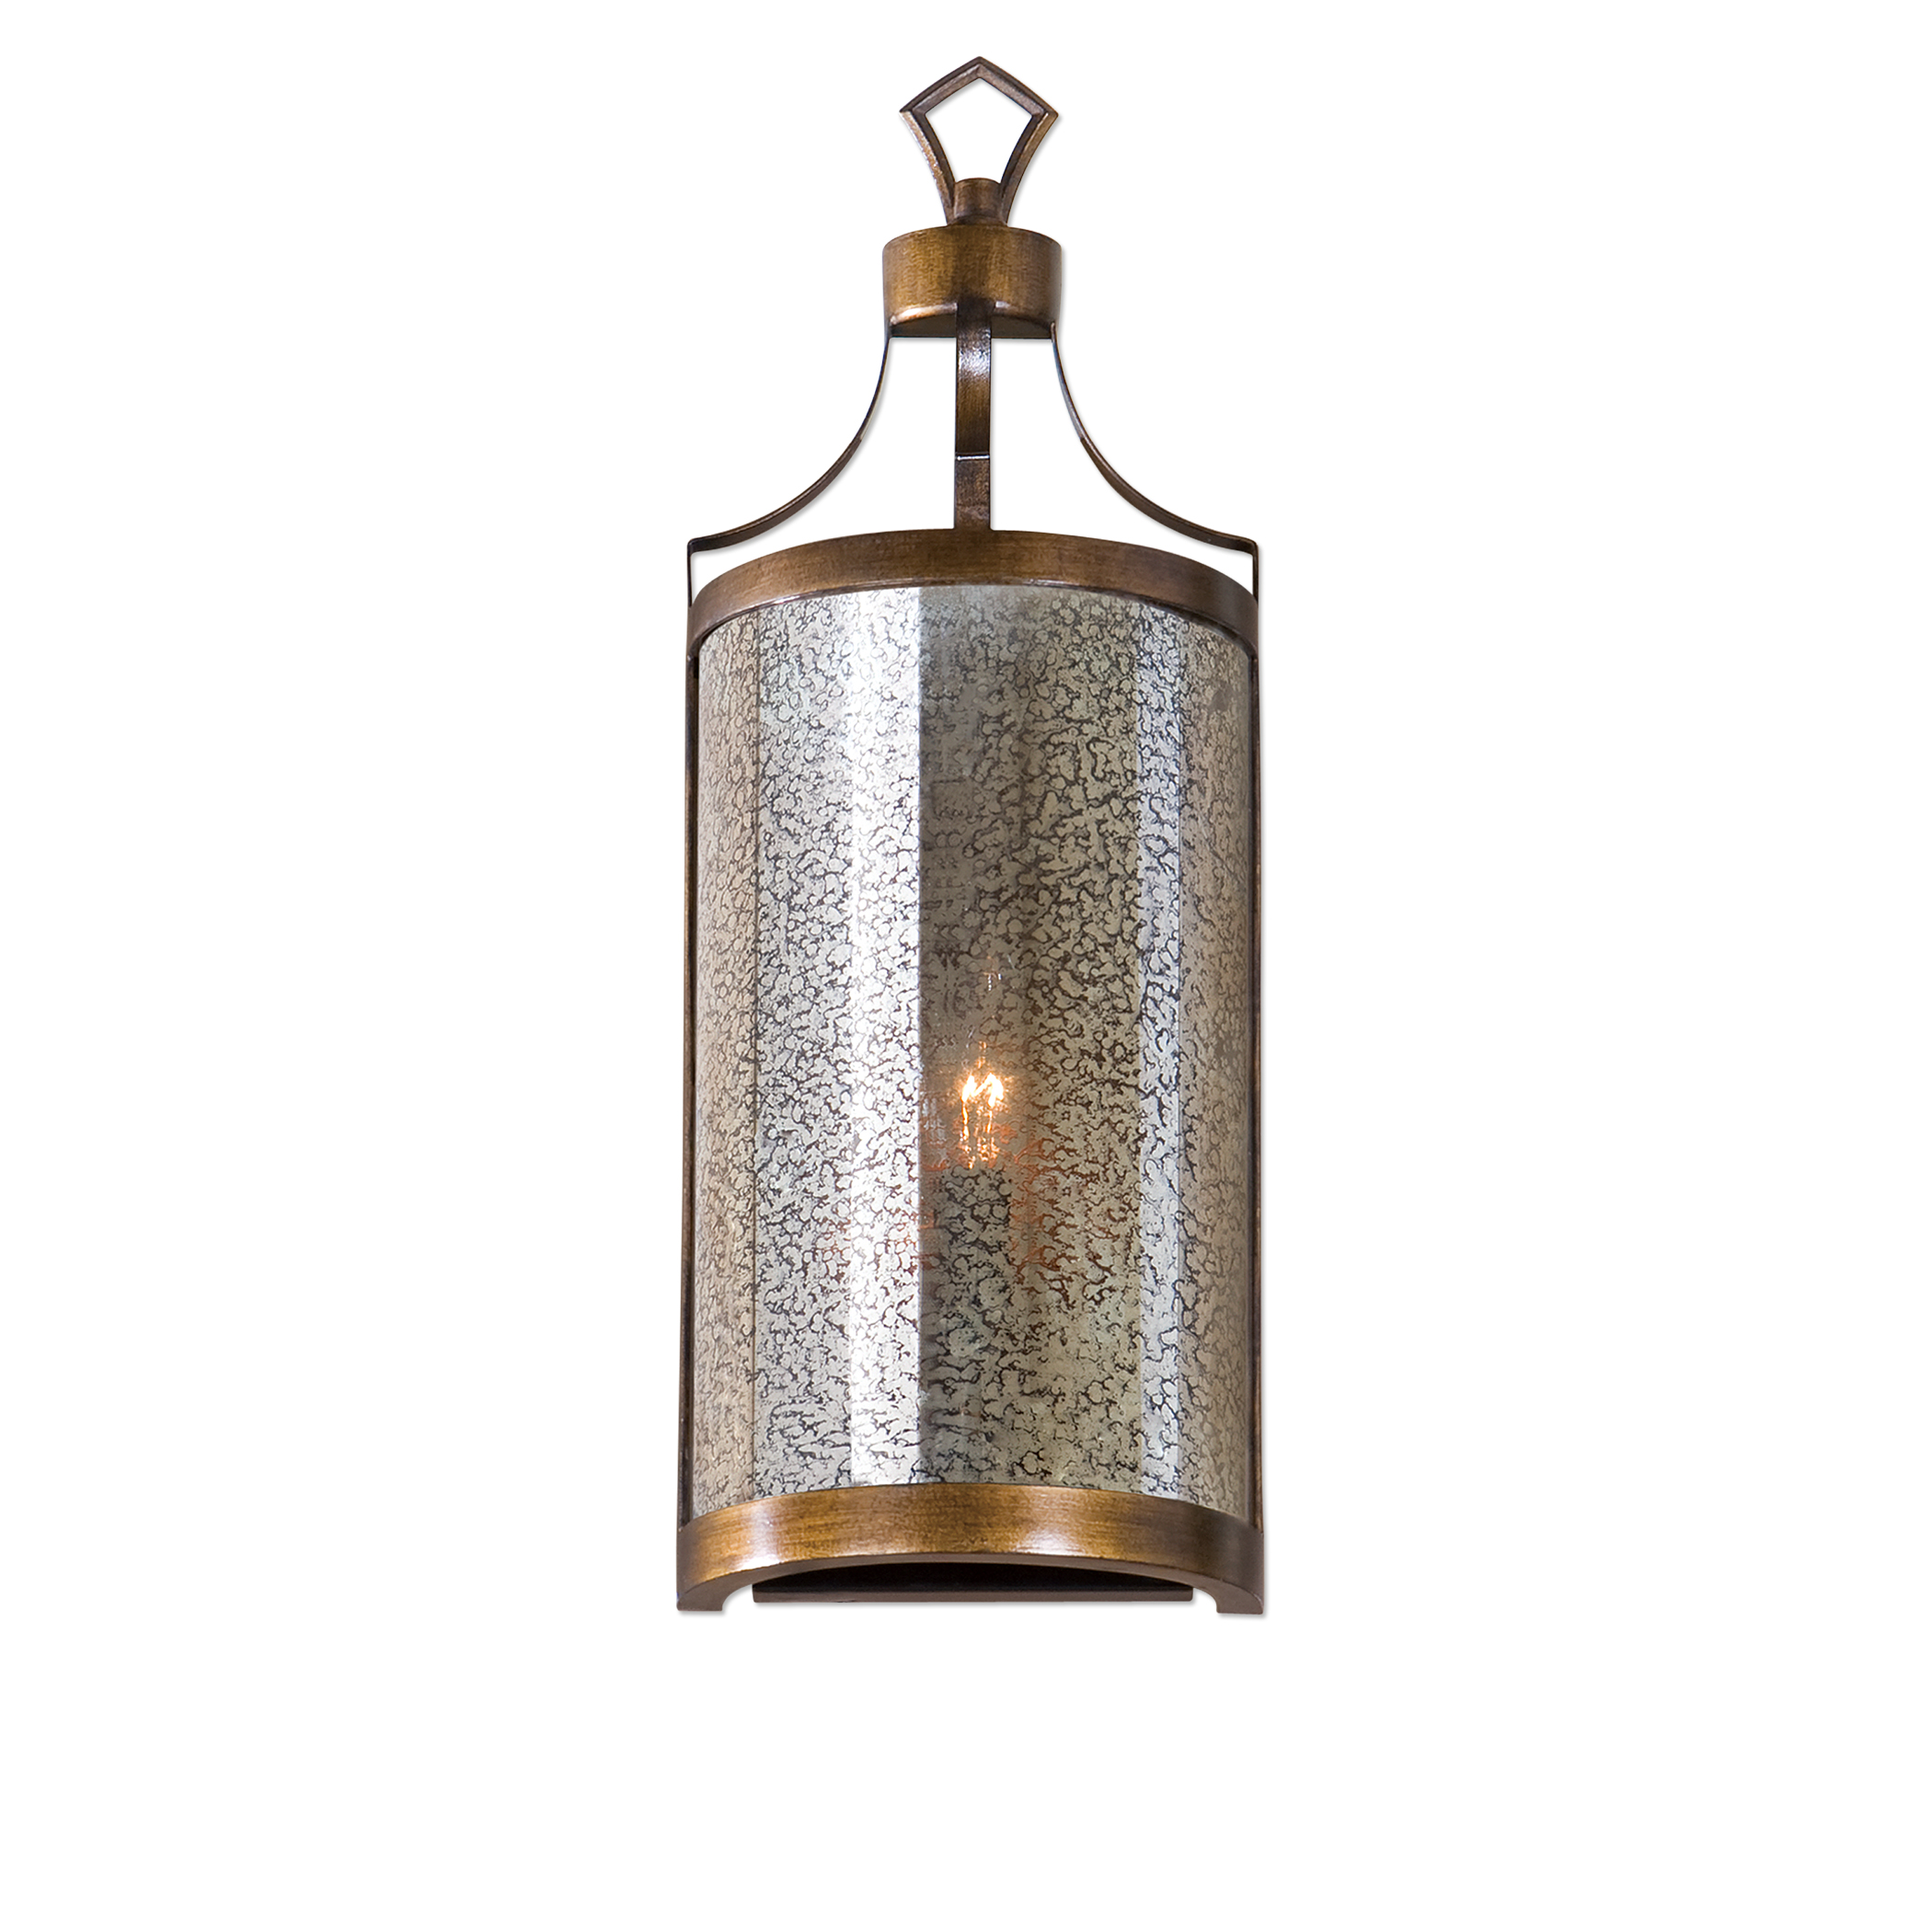 Uttermost Lighting Fixtures Croydon 1 Light Mercury Glass Sconce - Item Number: 22503